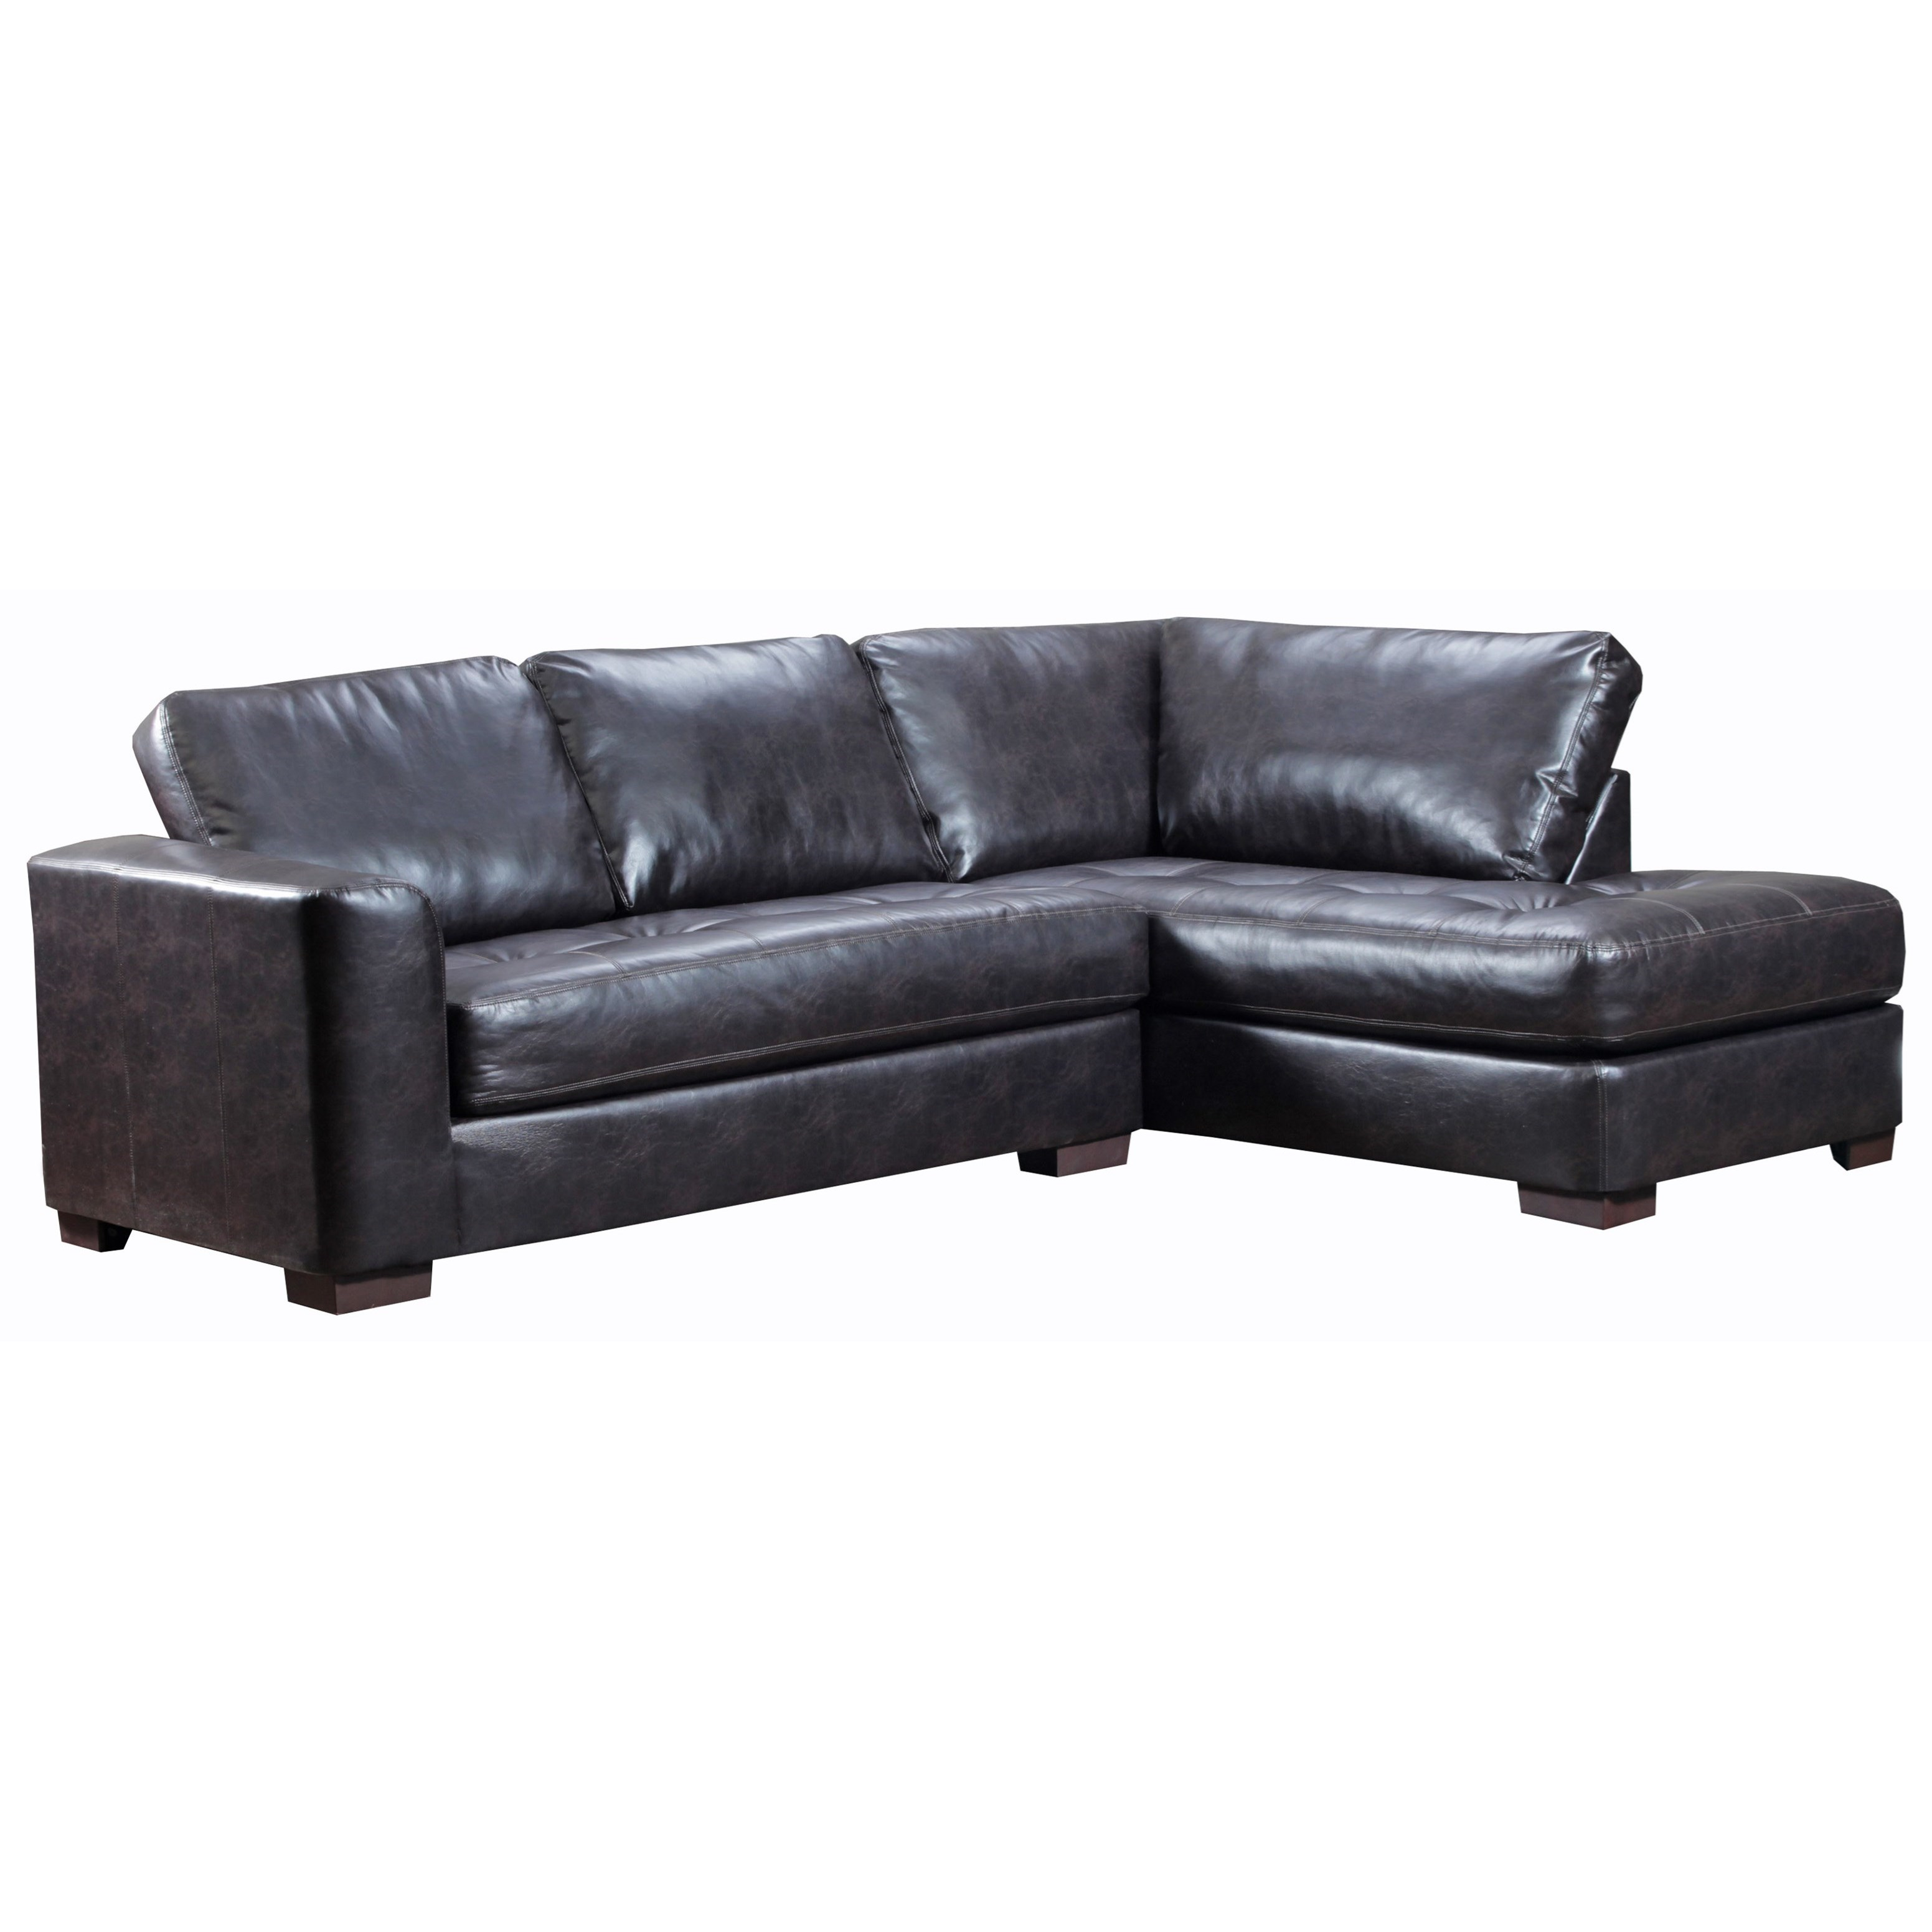 sofas by design des moines bright sofa bed inspirational sectional ia